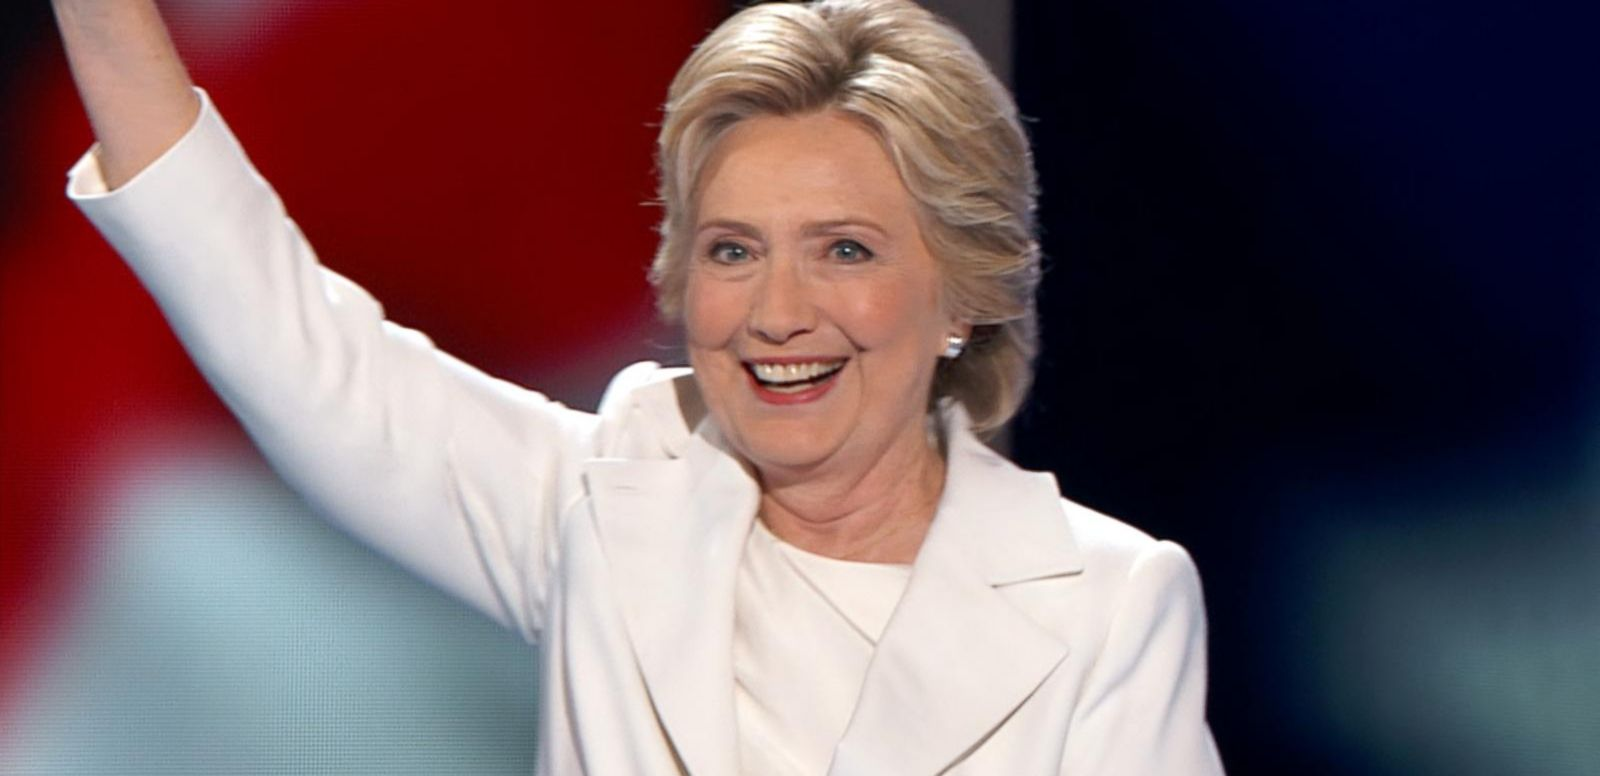 She officially became the first female nominee of a major political party.